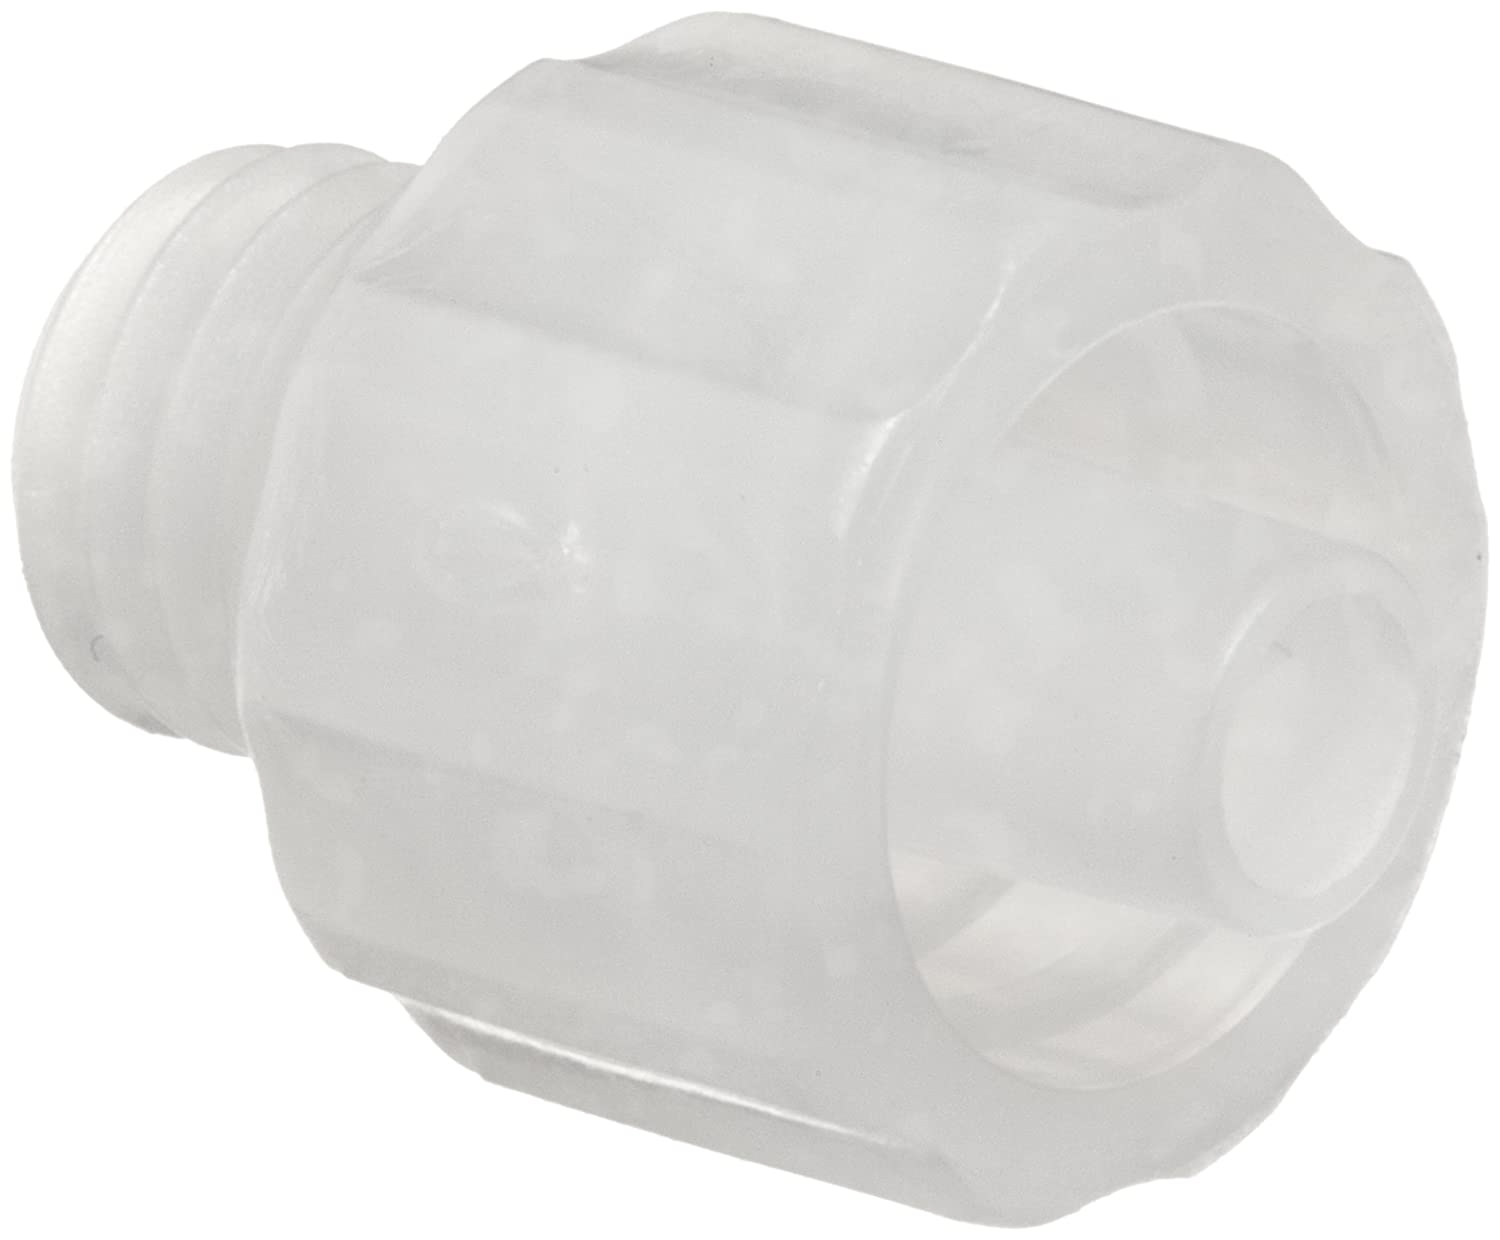 Free shipping on posting reviews Value Max 89% OFF Plastic SMTLL-J1A Luer Tube Fitting Male Threaded Adapter